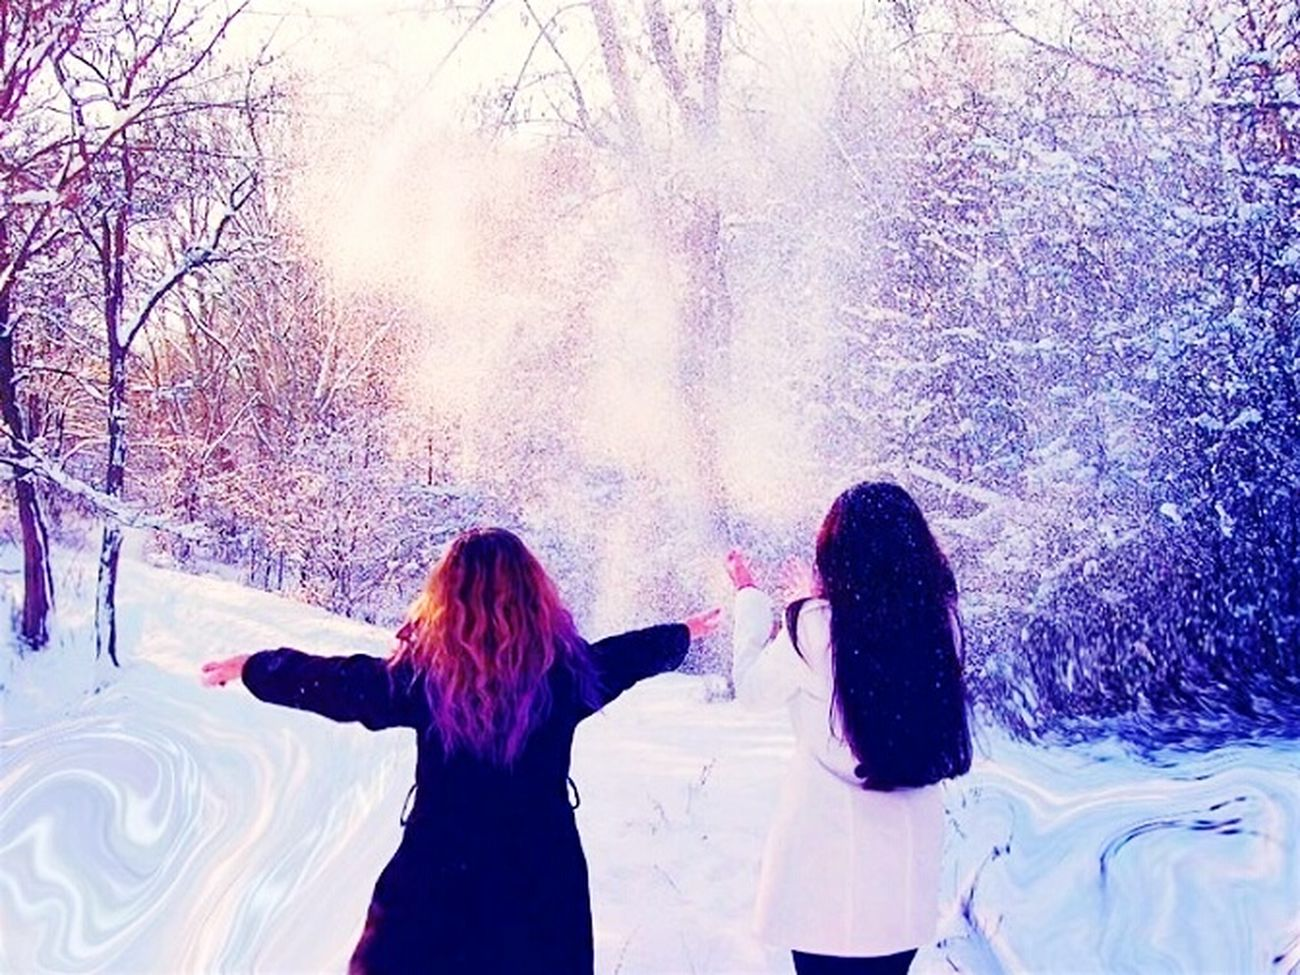 Taking Photos Beautiful Day Happy Time My Time Enjoying Life Check This Out Snow ❄ Life Is Beautiful Smail For Life Moments Likelife Beautiful Girl